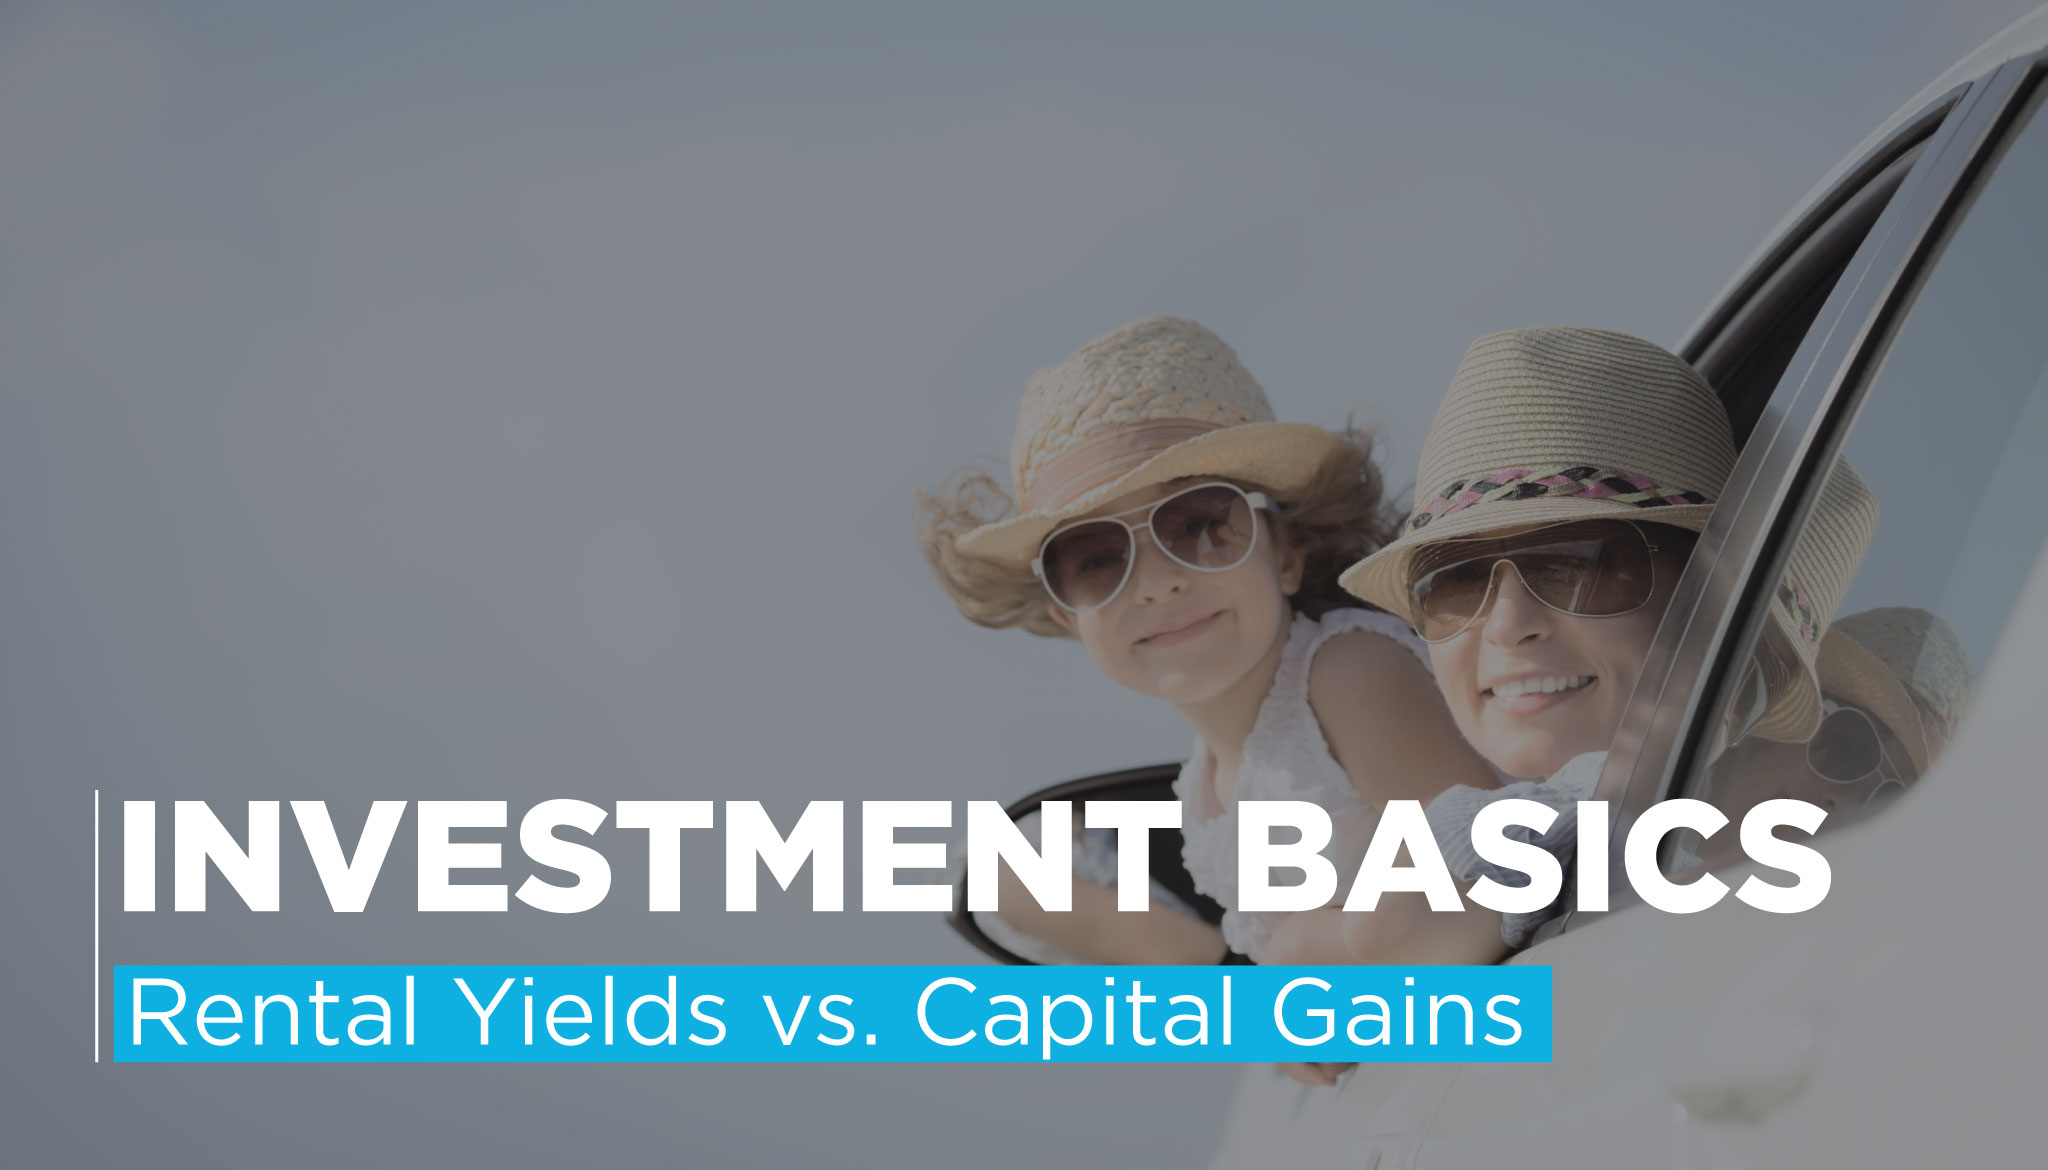 Yield-vs-Capital-Gains.jpg